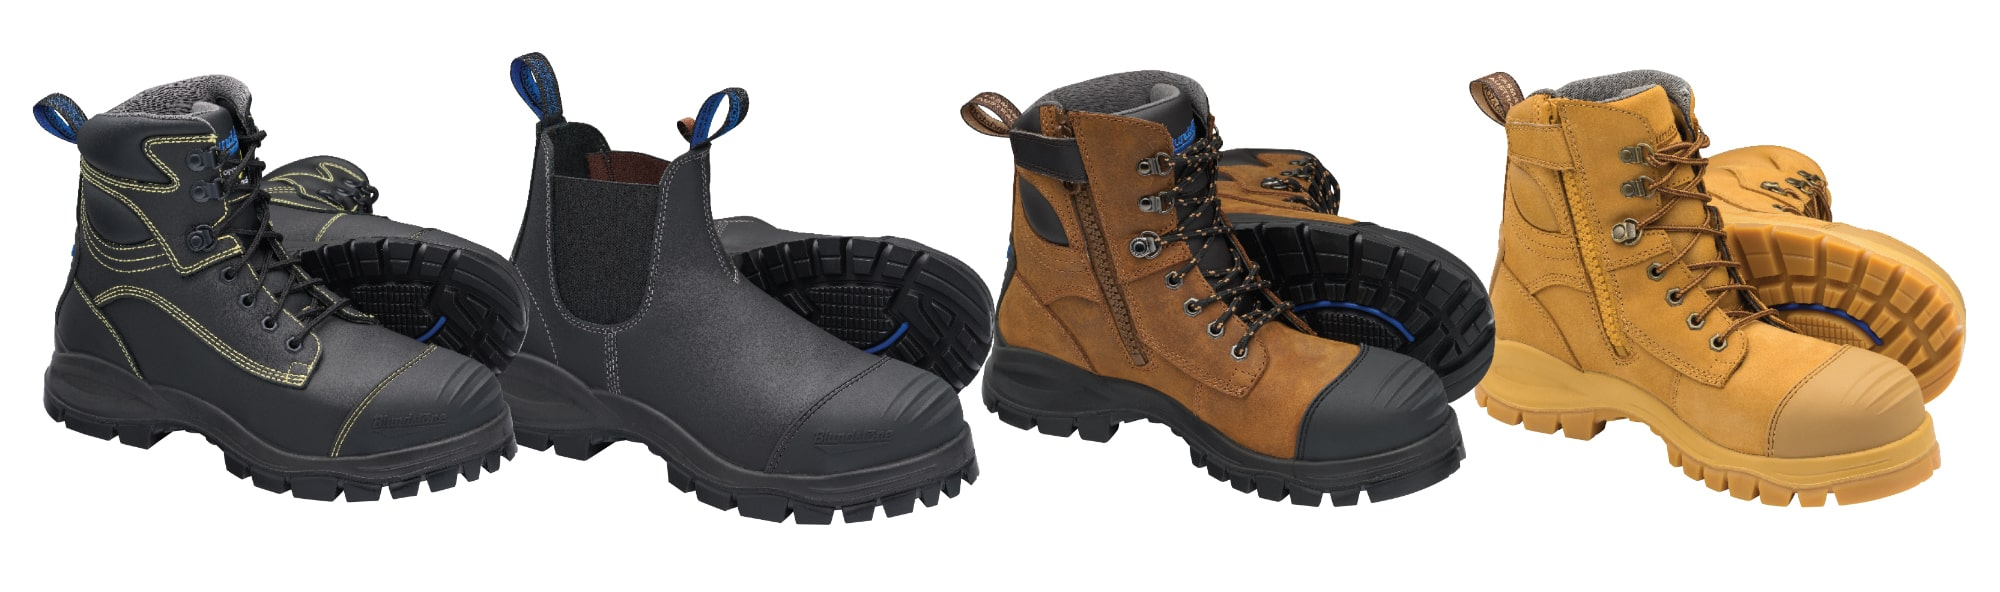 Blundstone Choosing the Correct Safety Footwear RANGE